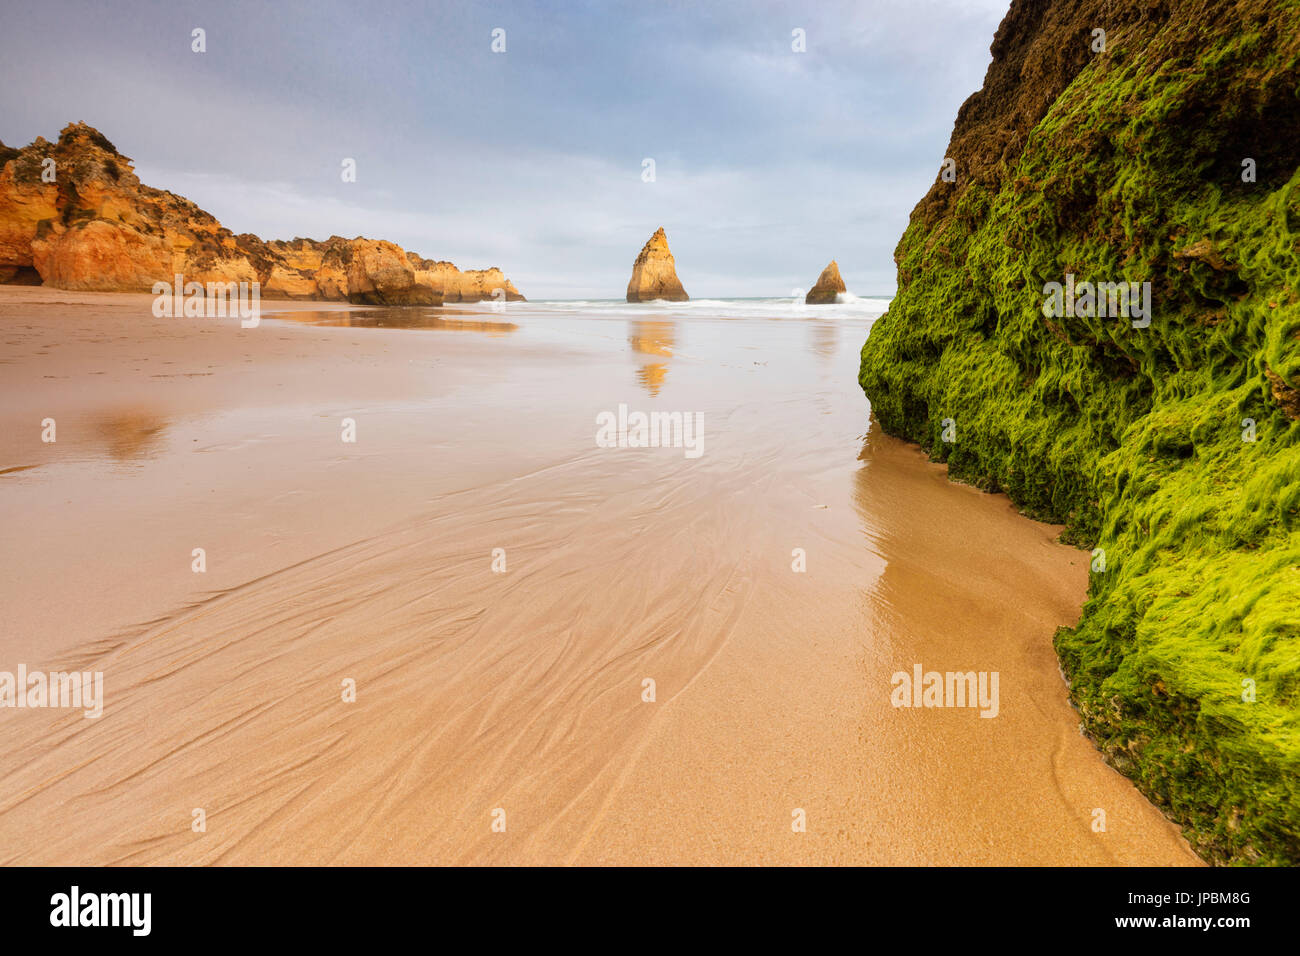 Rocks surrounding the sandy beach are reflected in the clear water Albandeira Lagoa Municipality Algarve Portugal Stock Photo